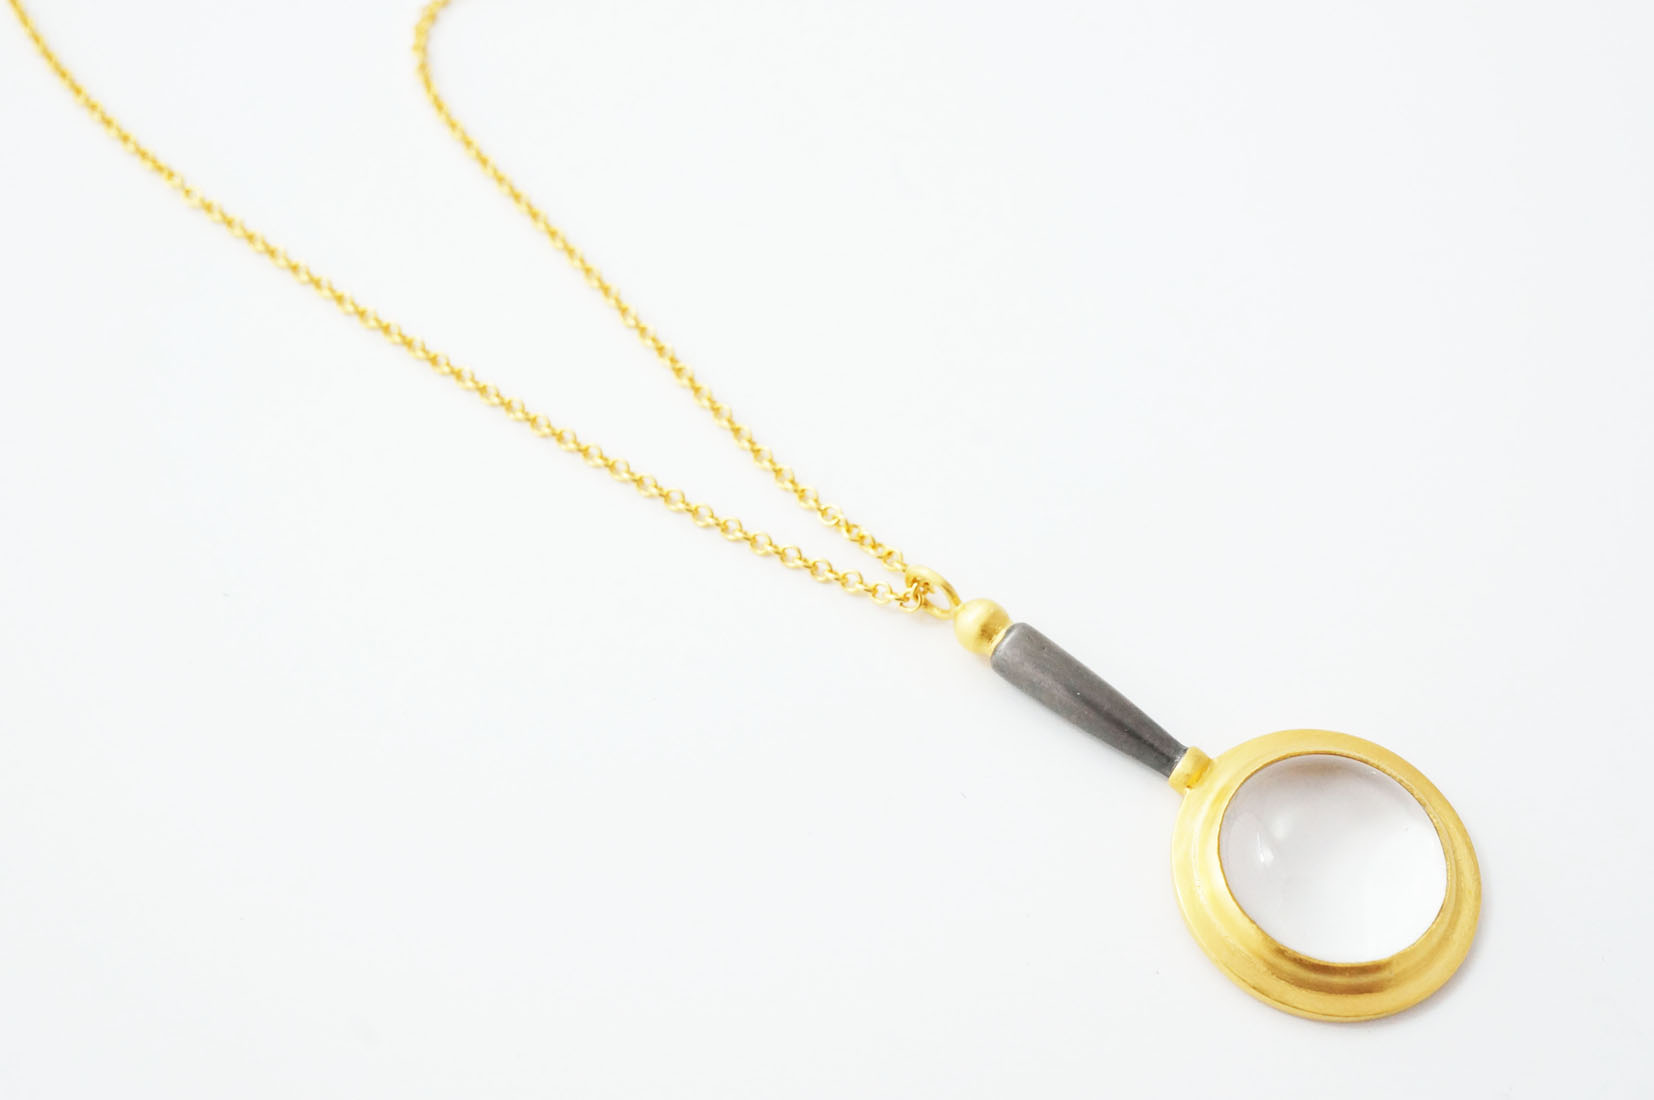 Magnifying Glass Pendant  18ct Gold Vermeil and Black Rhodium Plated Sterling Silver  £218